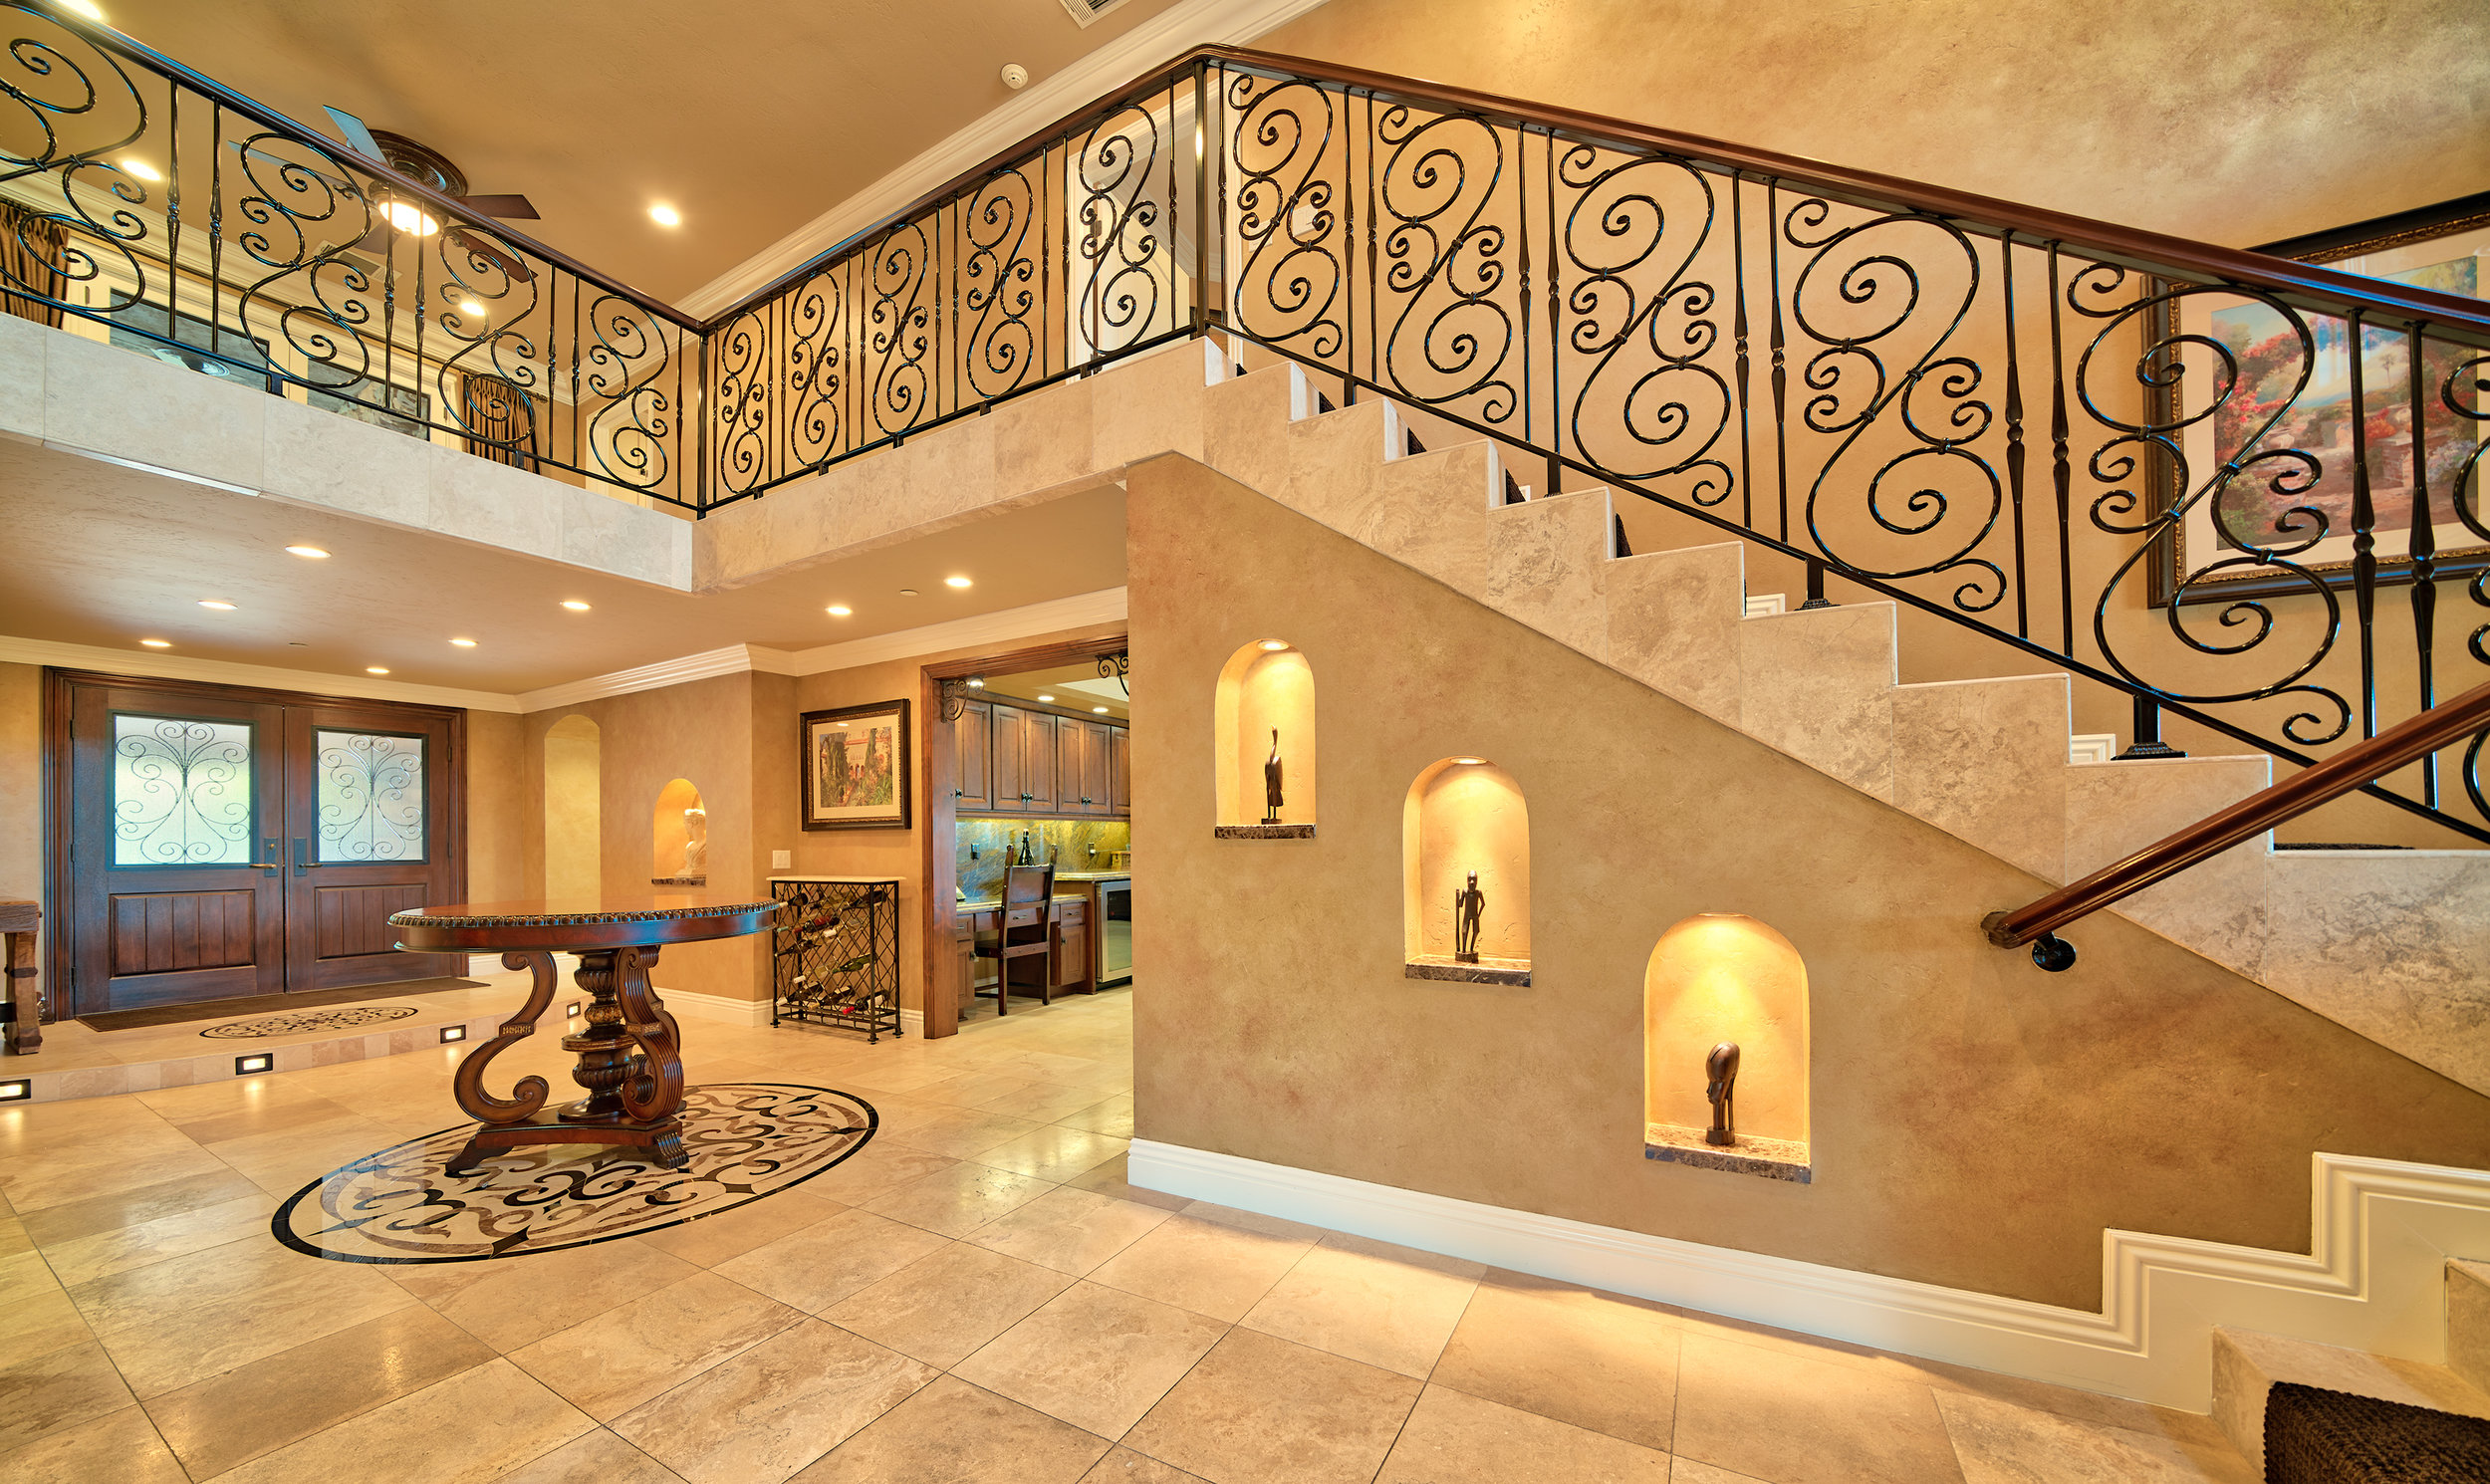 4153_PalomarDr_Interior_Stairs01_full.jpg